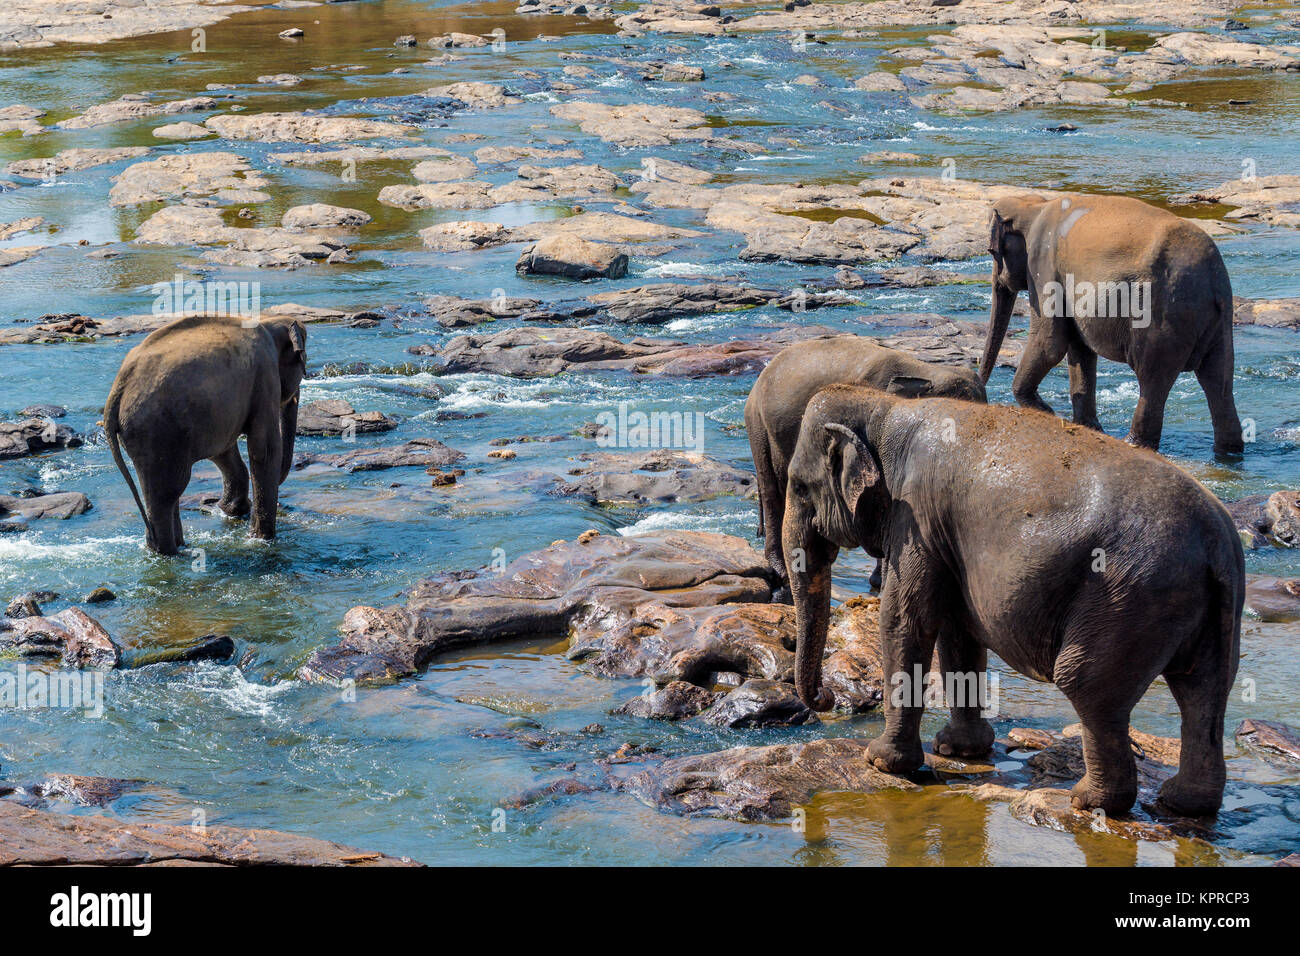 Elephants bathing in the river - Stock Image